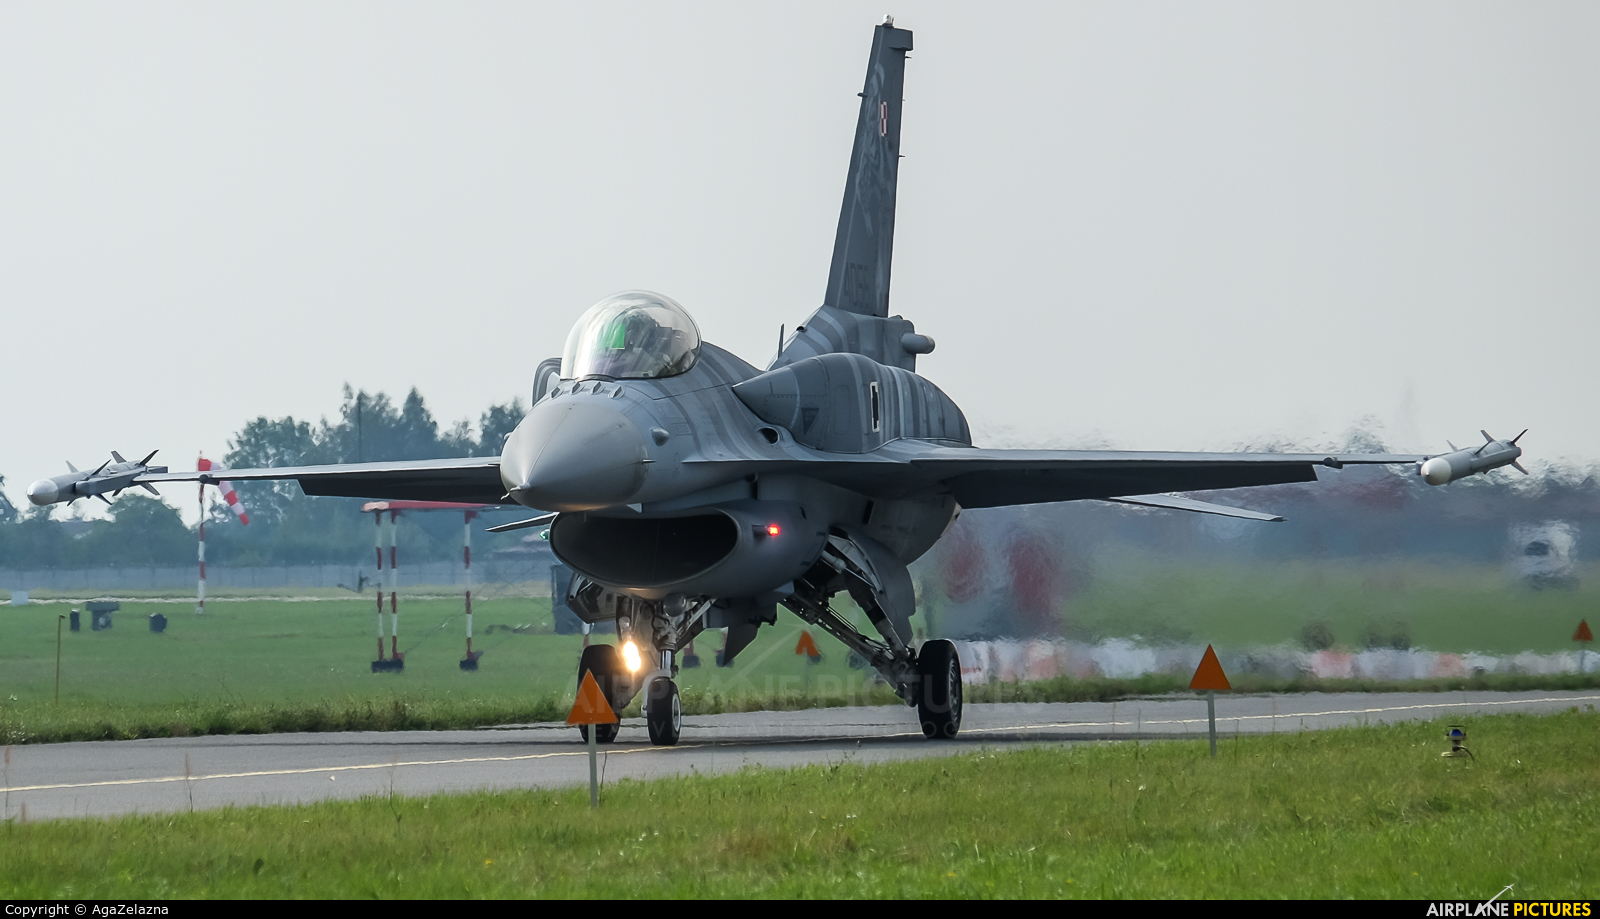 Poland - Air Force 4056 aircraft at Radom - Sadków